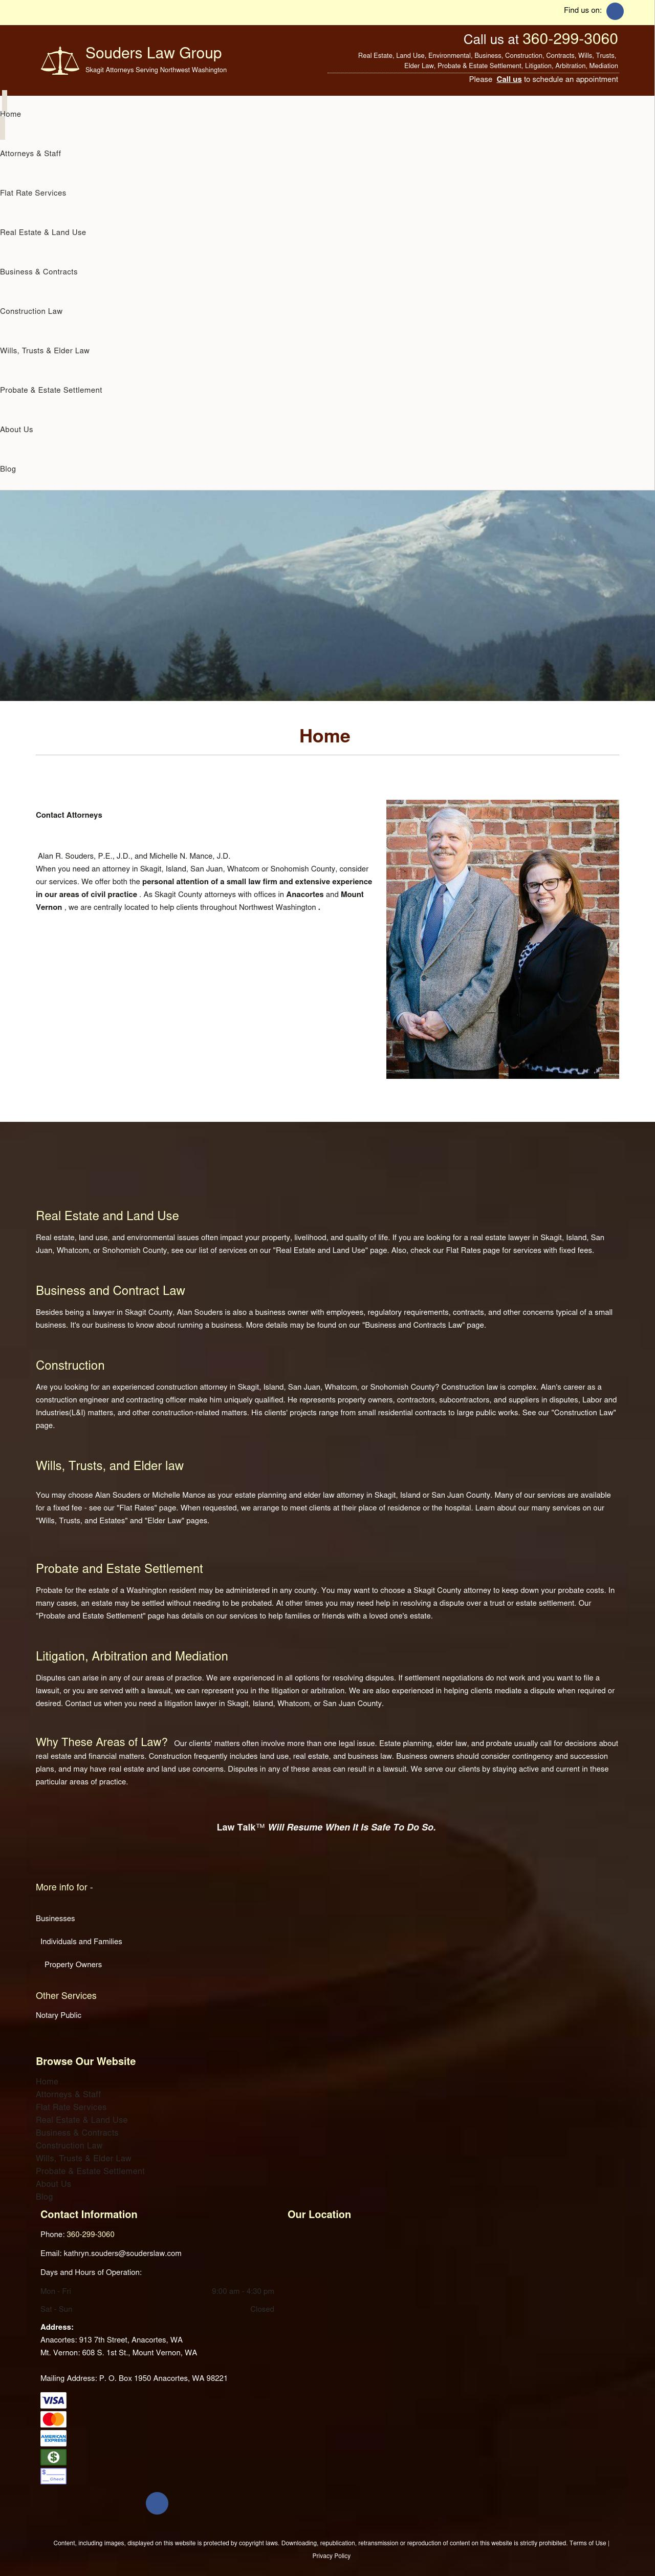 The Souders Law Group - Anacortes WA Lawyers